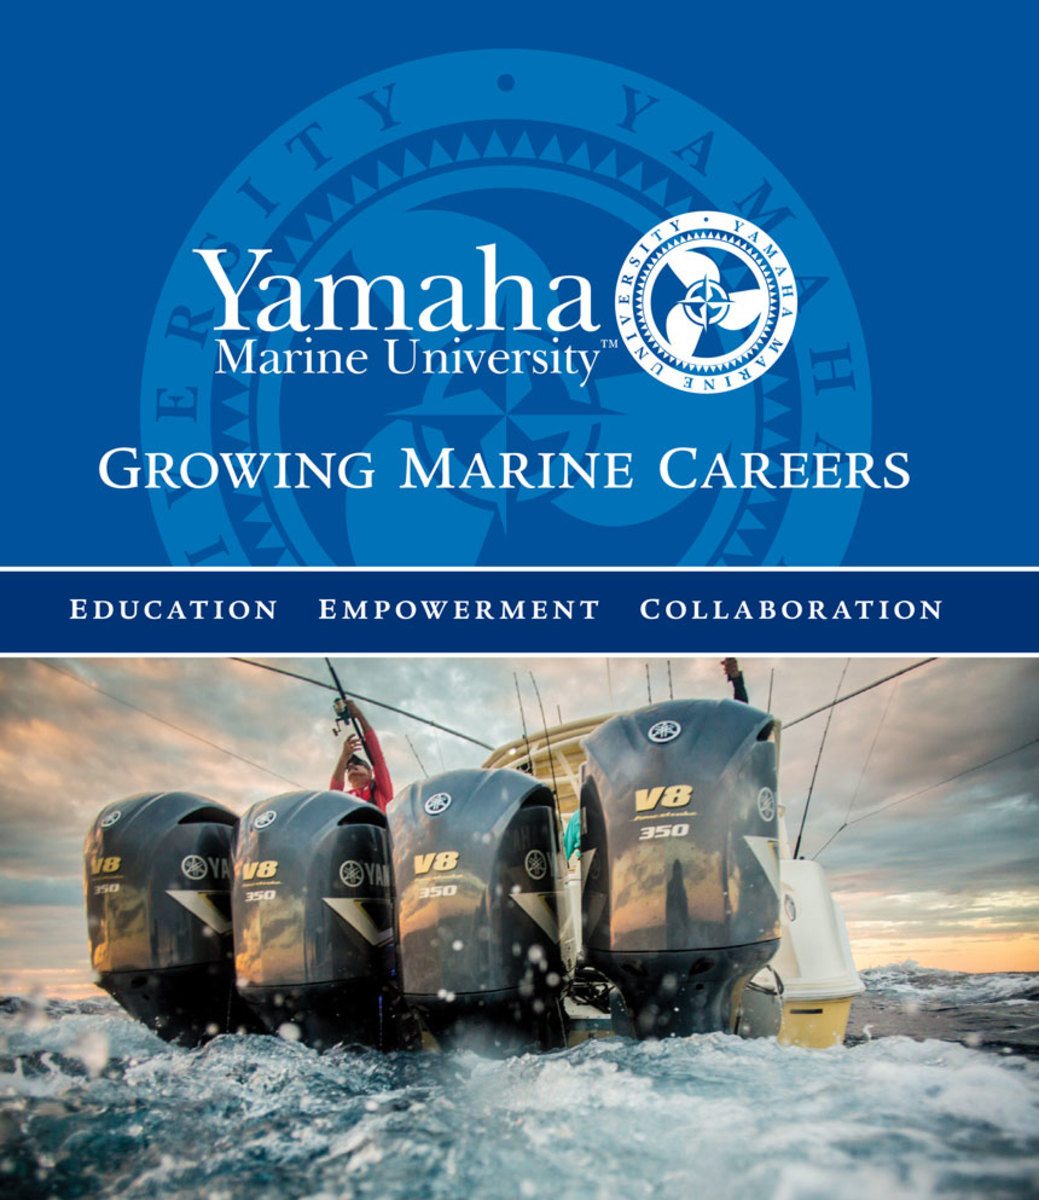 Yamaha Marine University plans new initiatives this year that will include a much anticipated apprenticeship program for developing skilled dealer technicians.